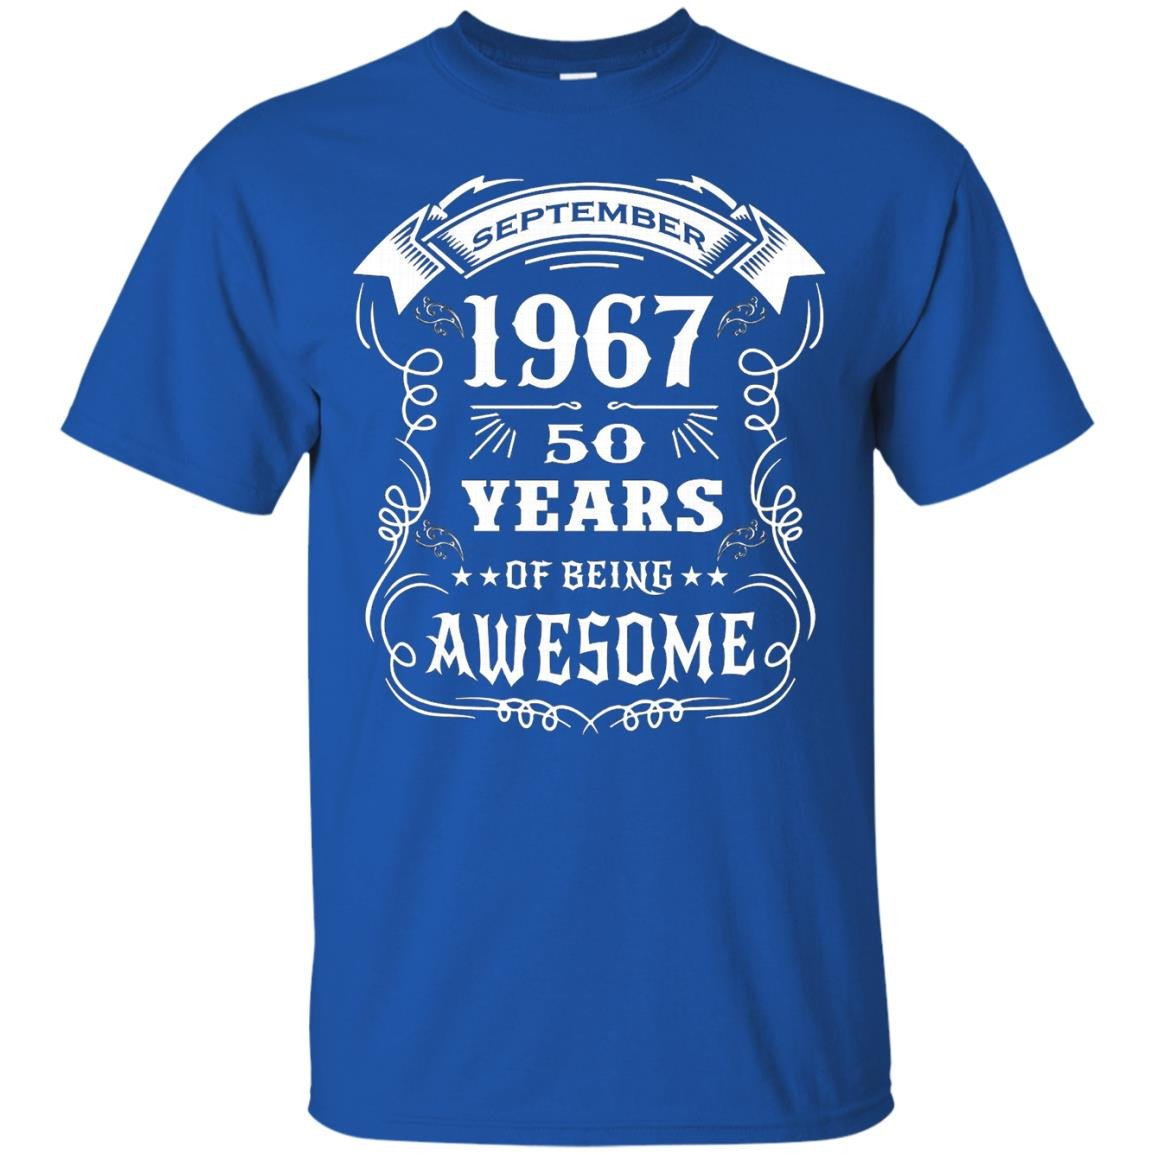 Born in September 1967 50 years of being awesome T-Shirt